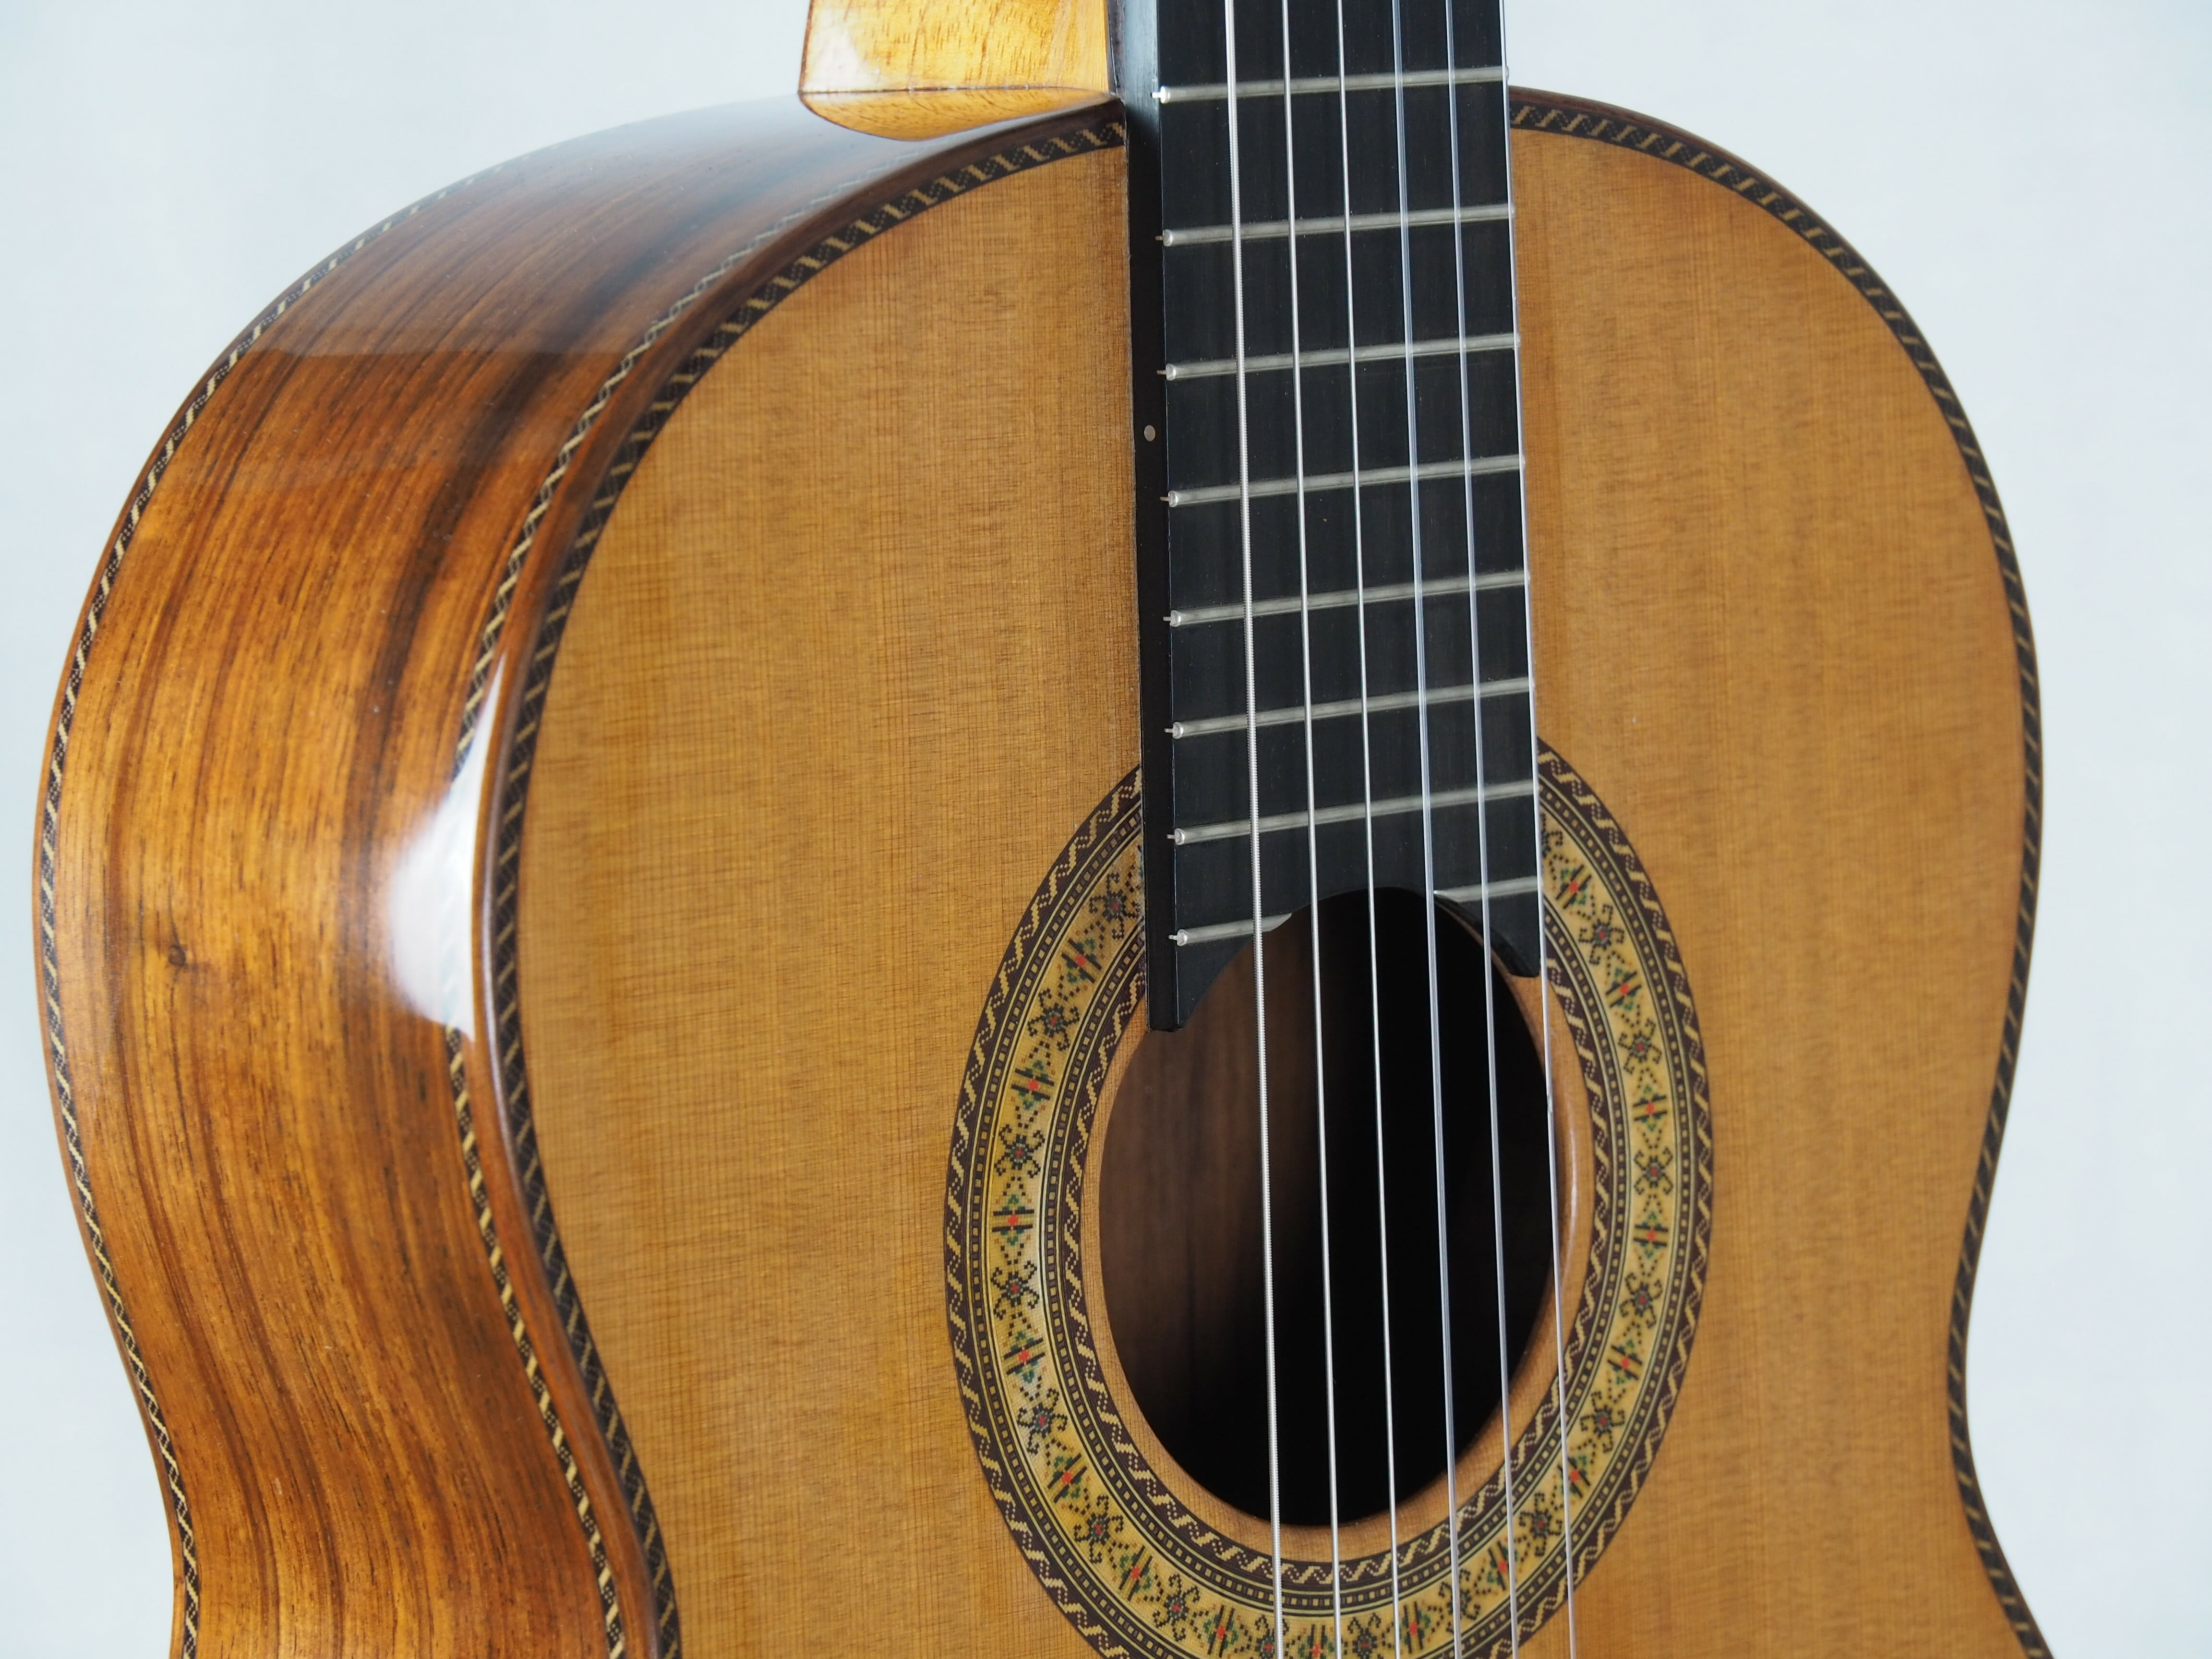 Luthier Dieter Hopf Portentosa Evolucion barrage lattice